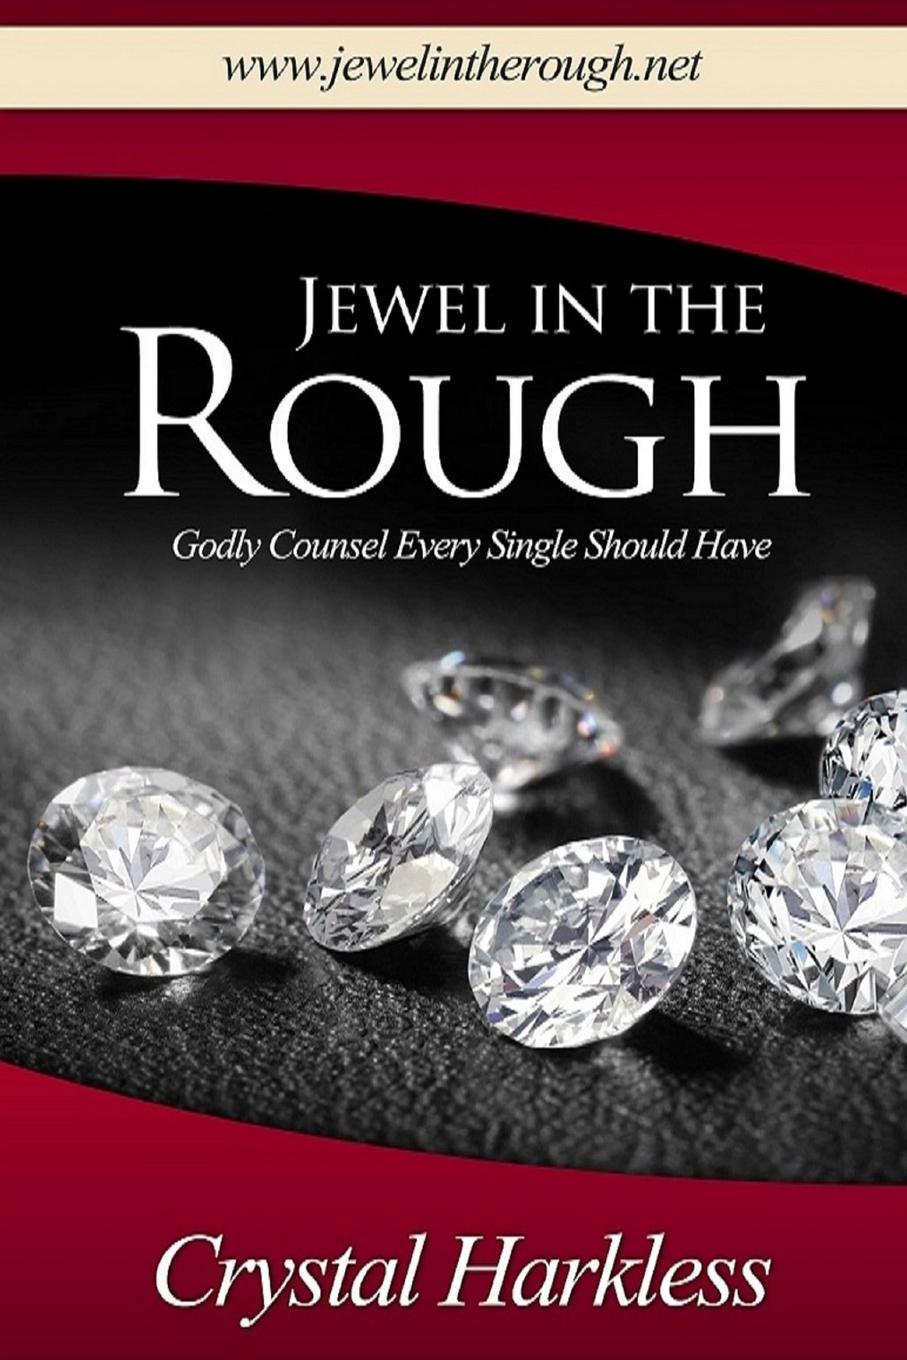 Crystal Harkless Jewel In The Rough Godly Counsel Every Single Should Have